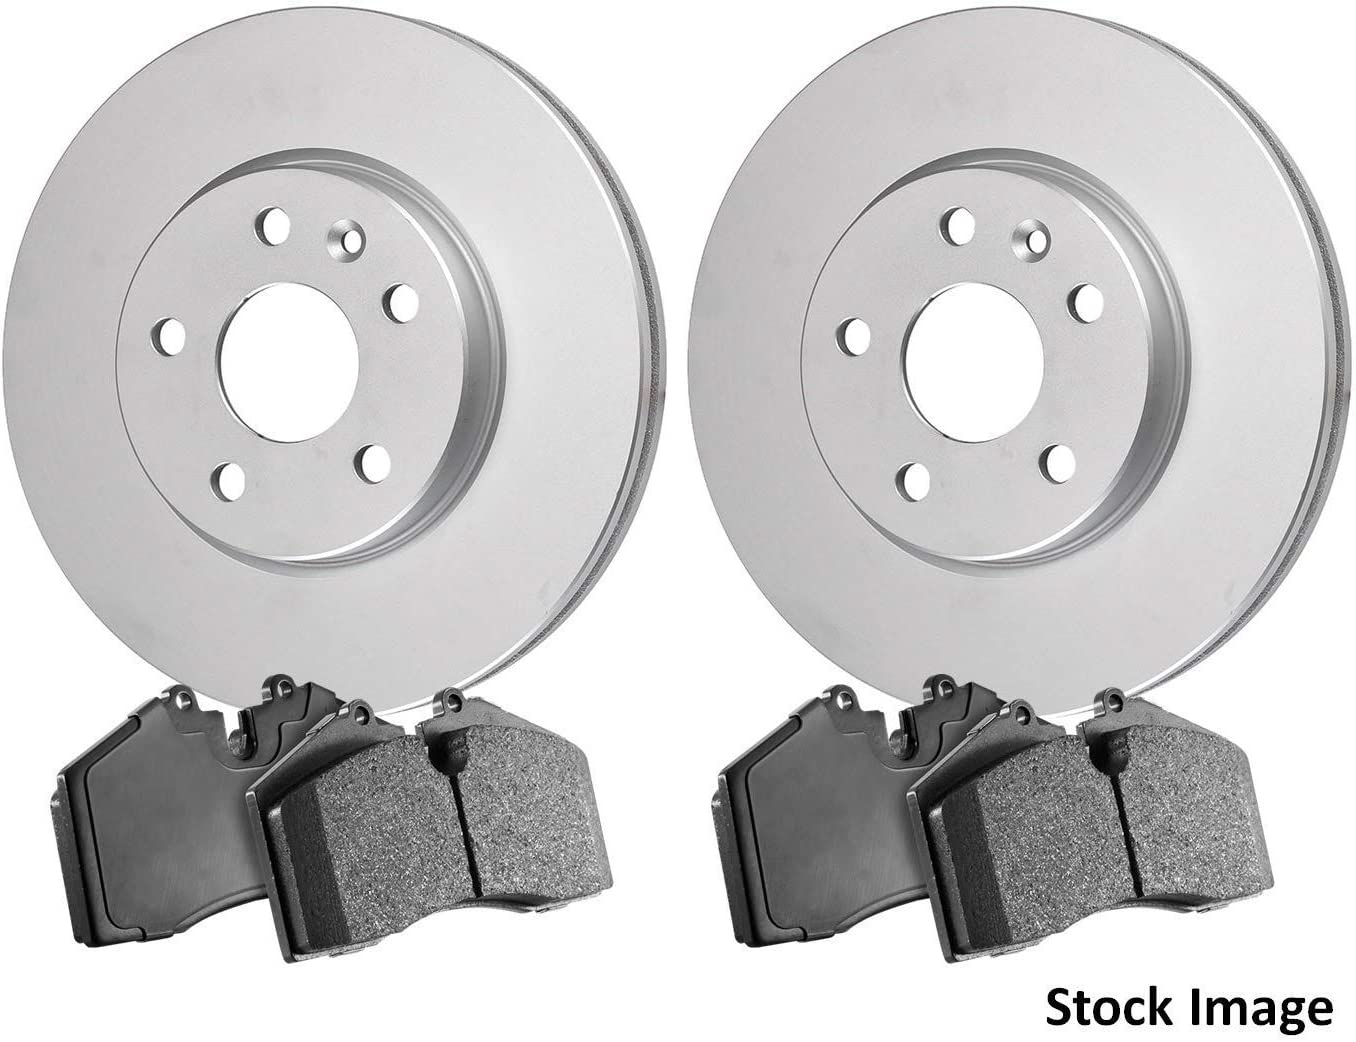 For Both Left and Right One Year Warranty Stirling 2017 for Honda Civic Rear Premium Quality Anti Rust Coated Disc Brake Rotors And Ceramic Brake Pads -